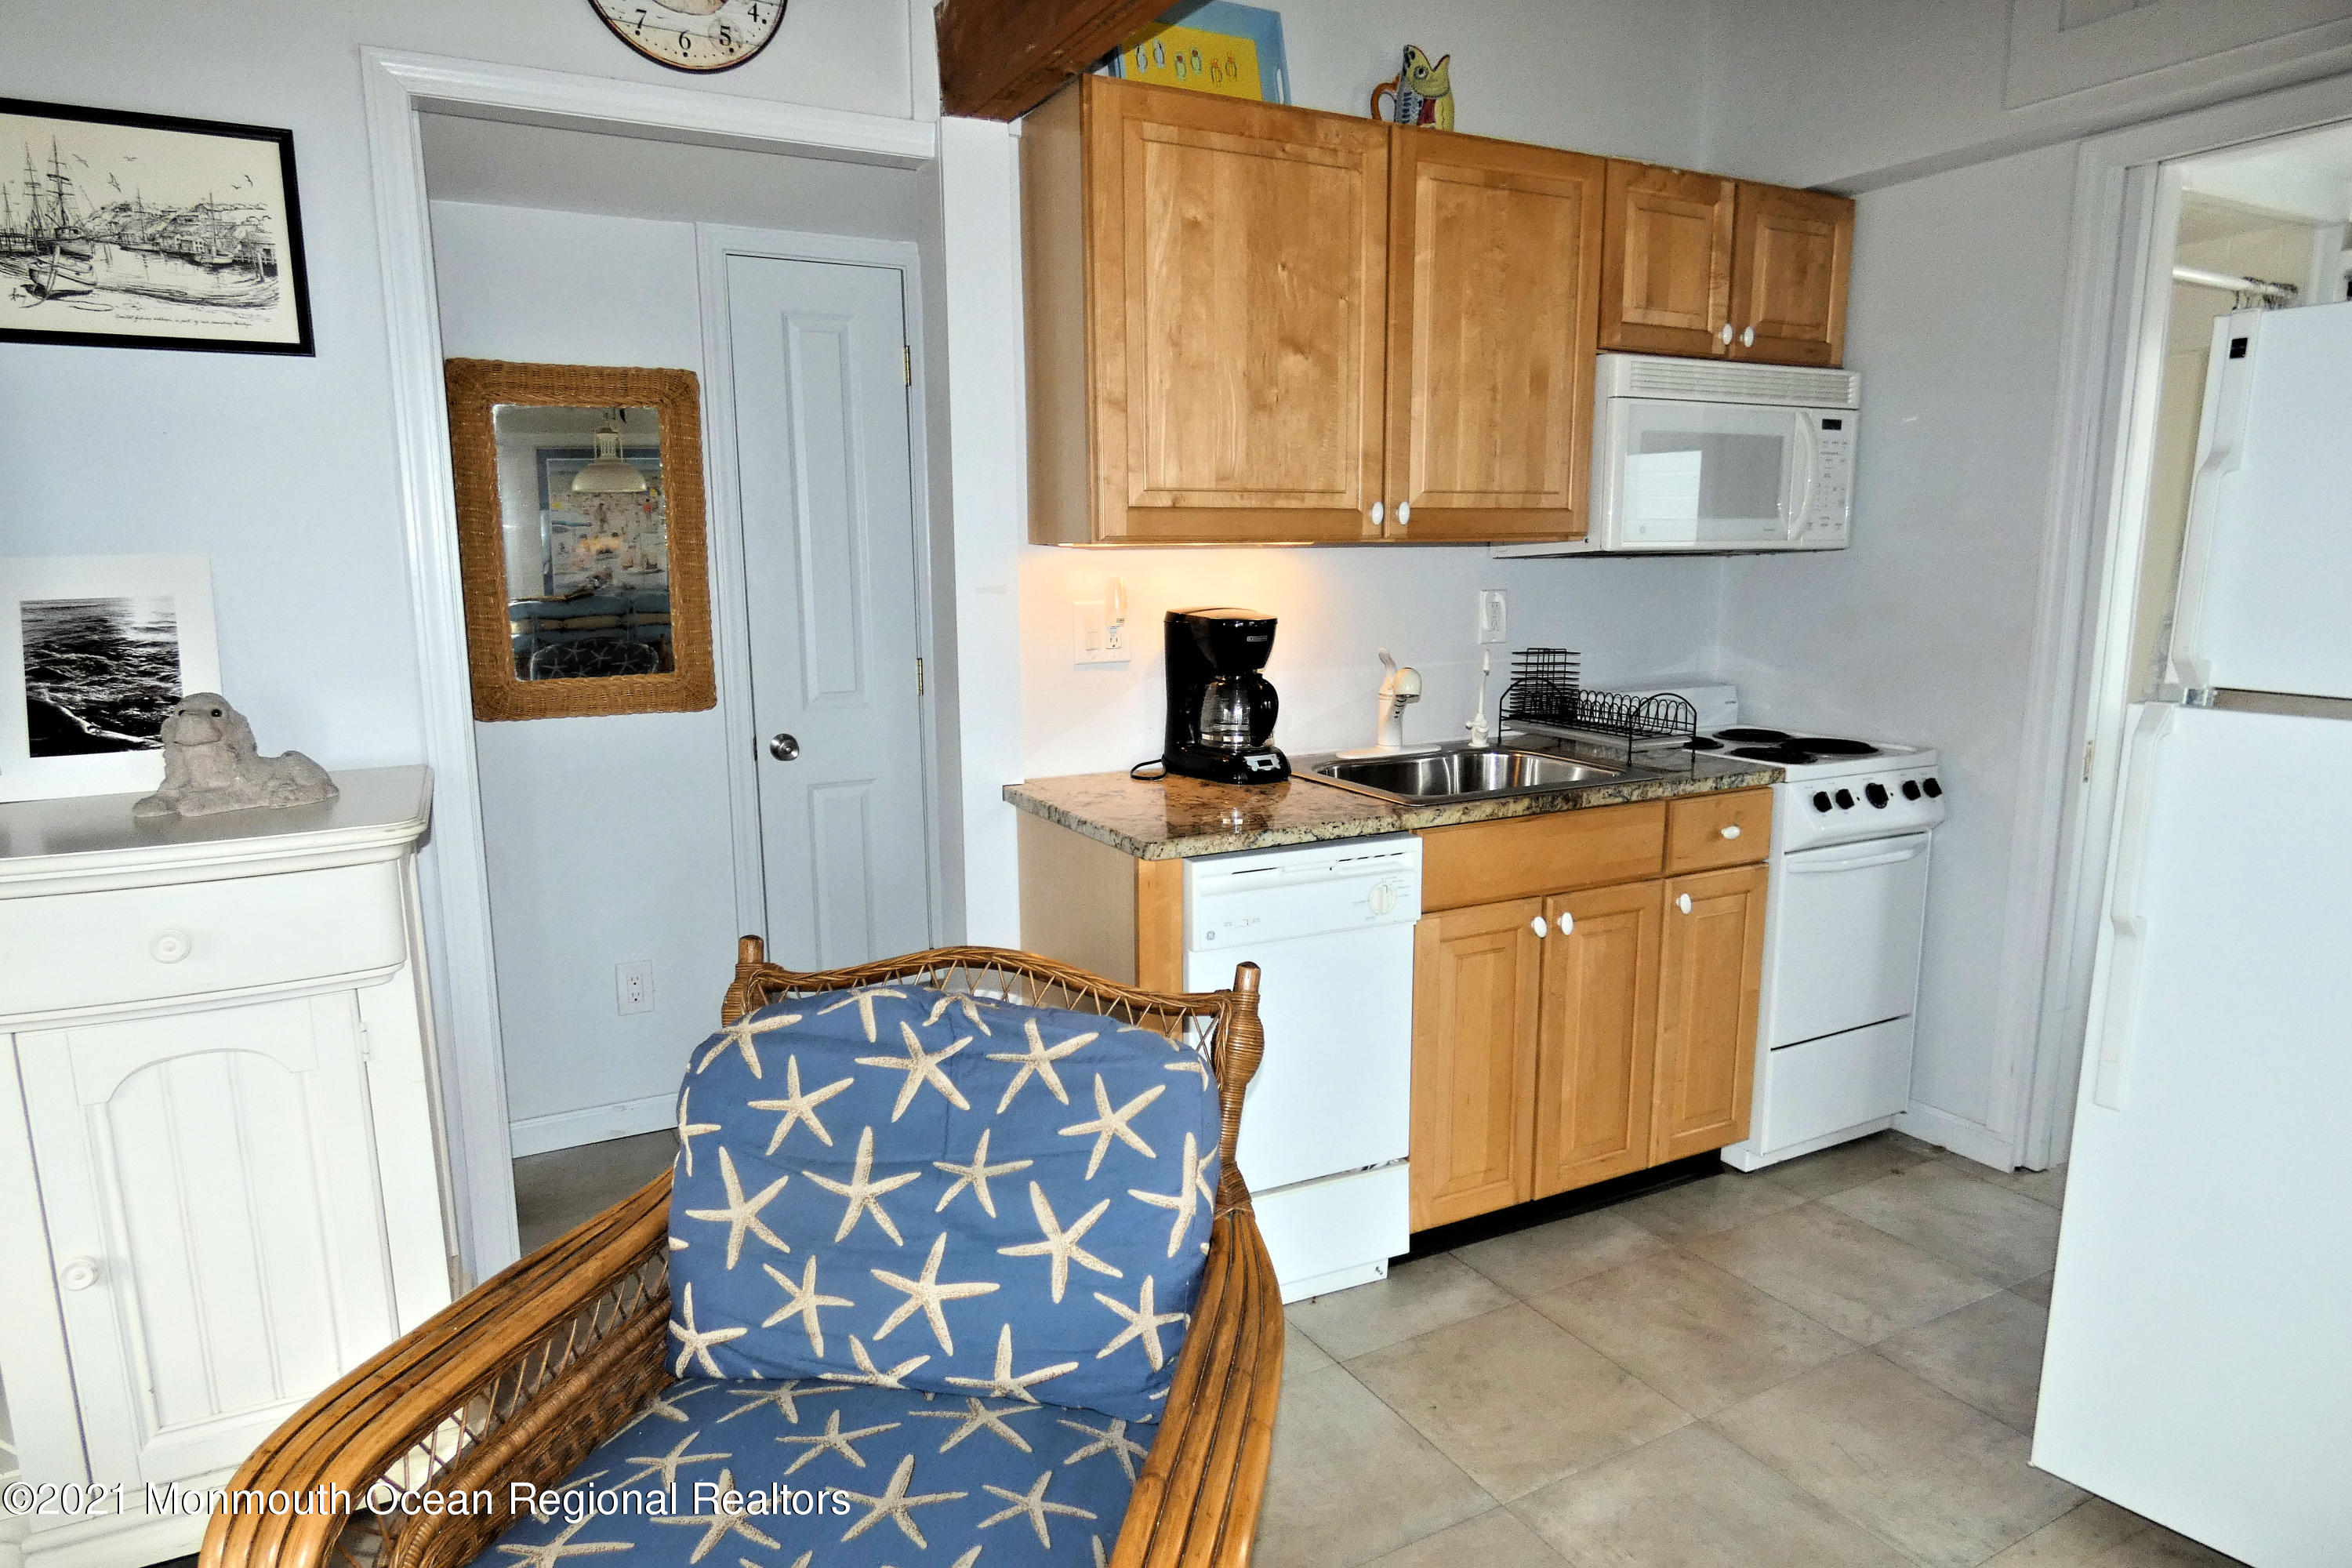 20 E Dolphin Way - Picture 10